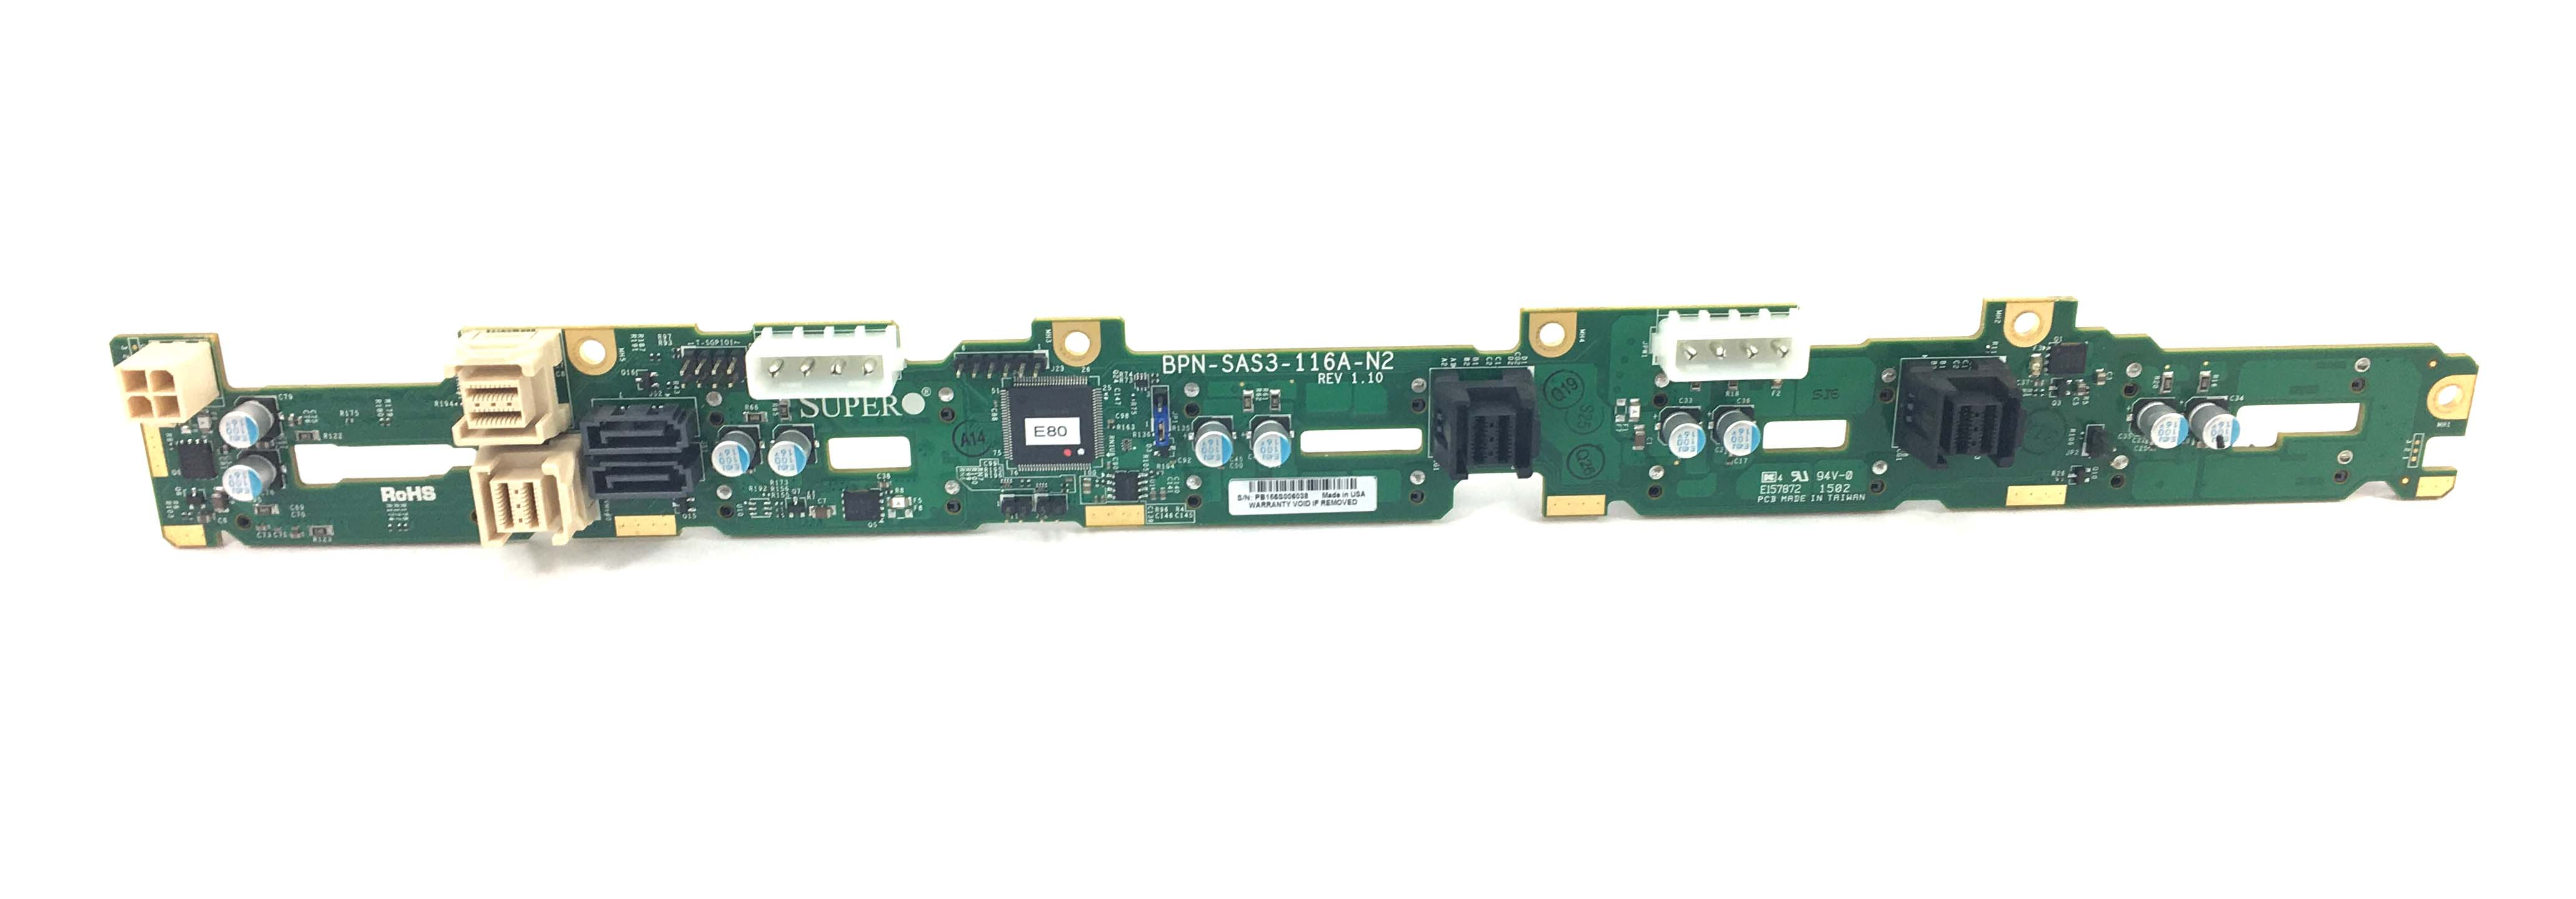 Supermicro 10-Bay SFF Hard Drive Backplane (BPN-SAS3-116A-N2)